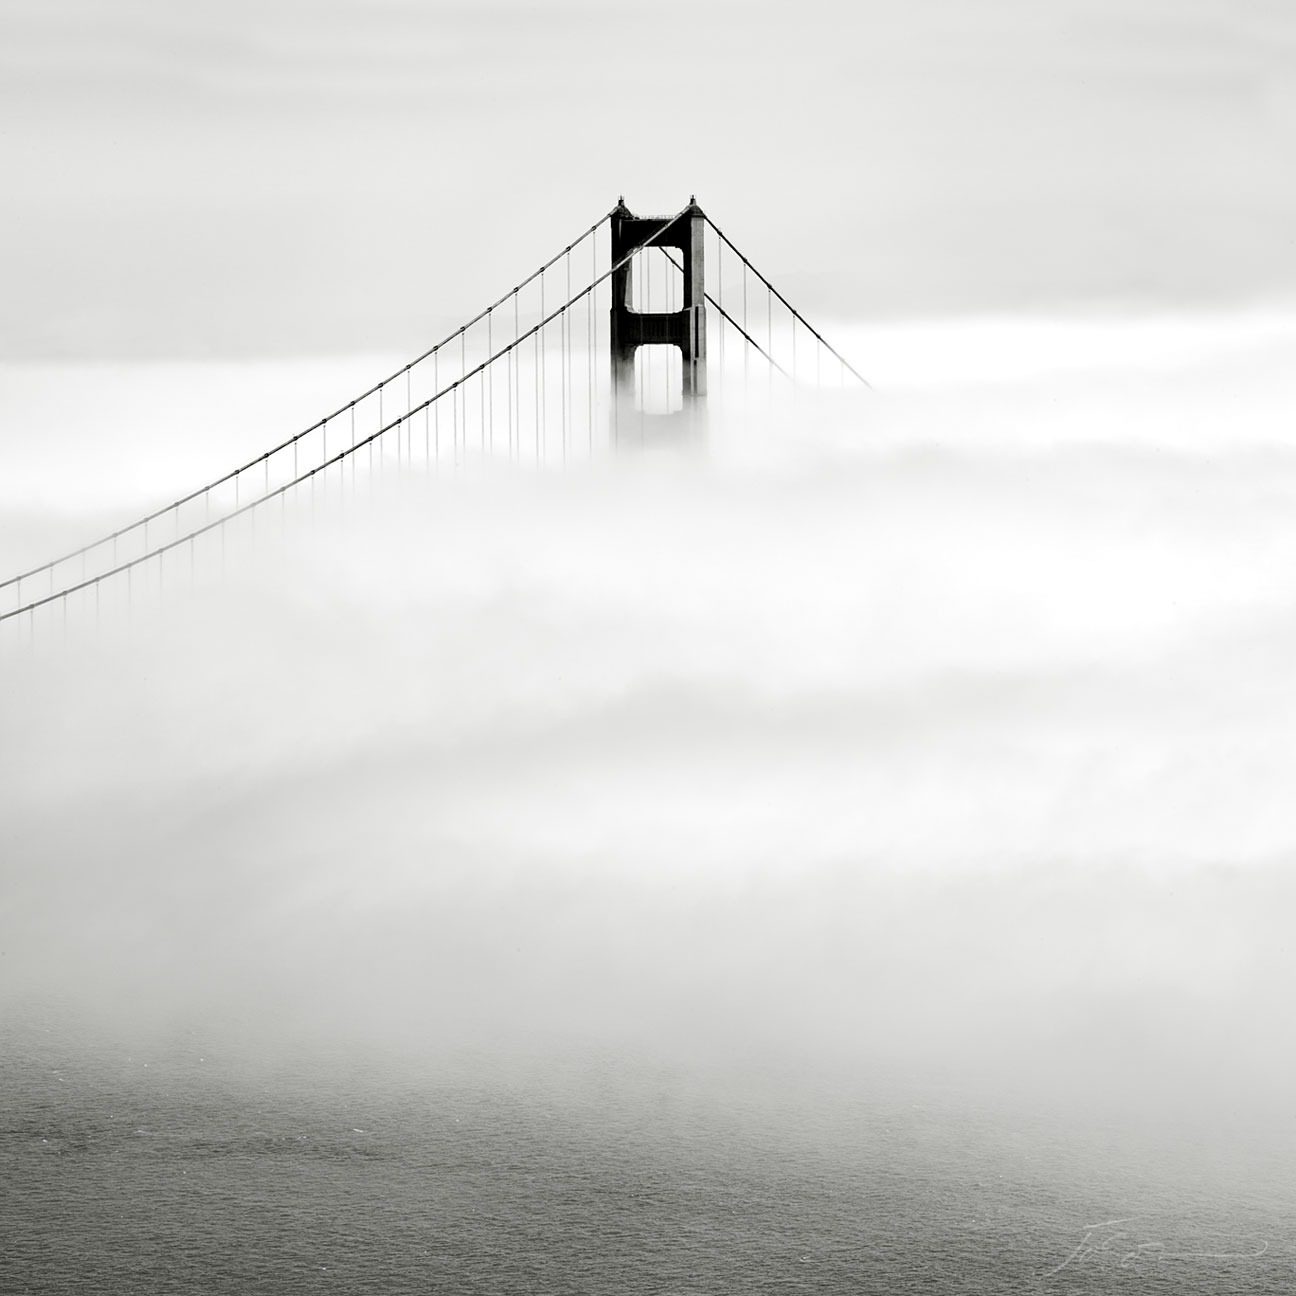 75 views of golden Gate Bridge by joSon_51.jpg